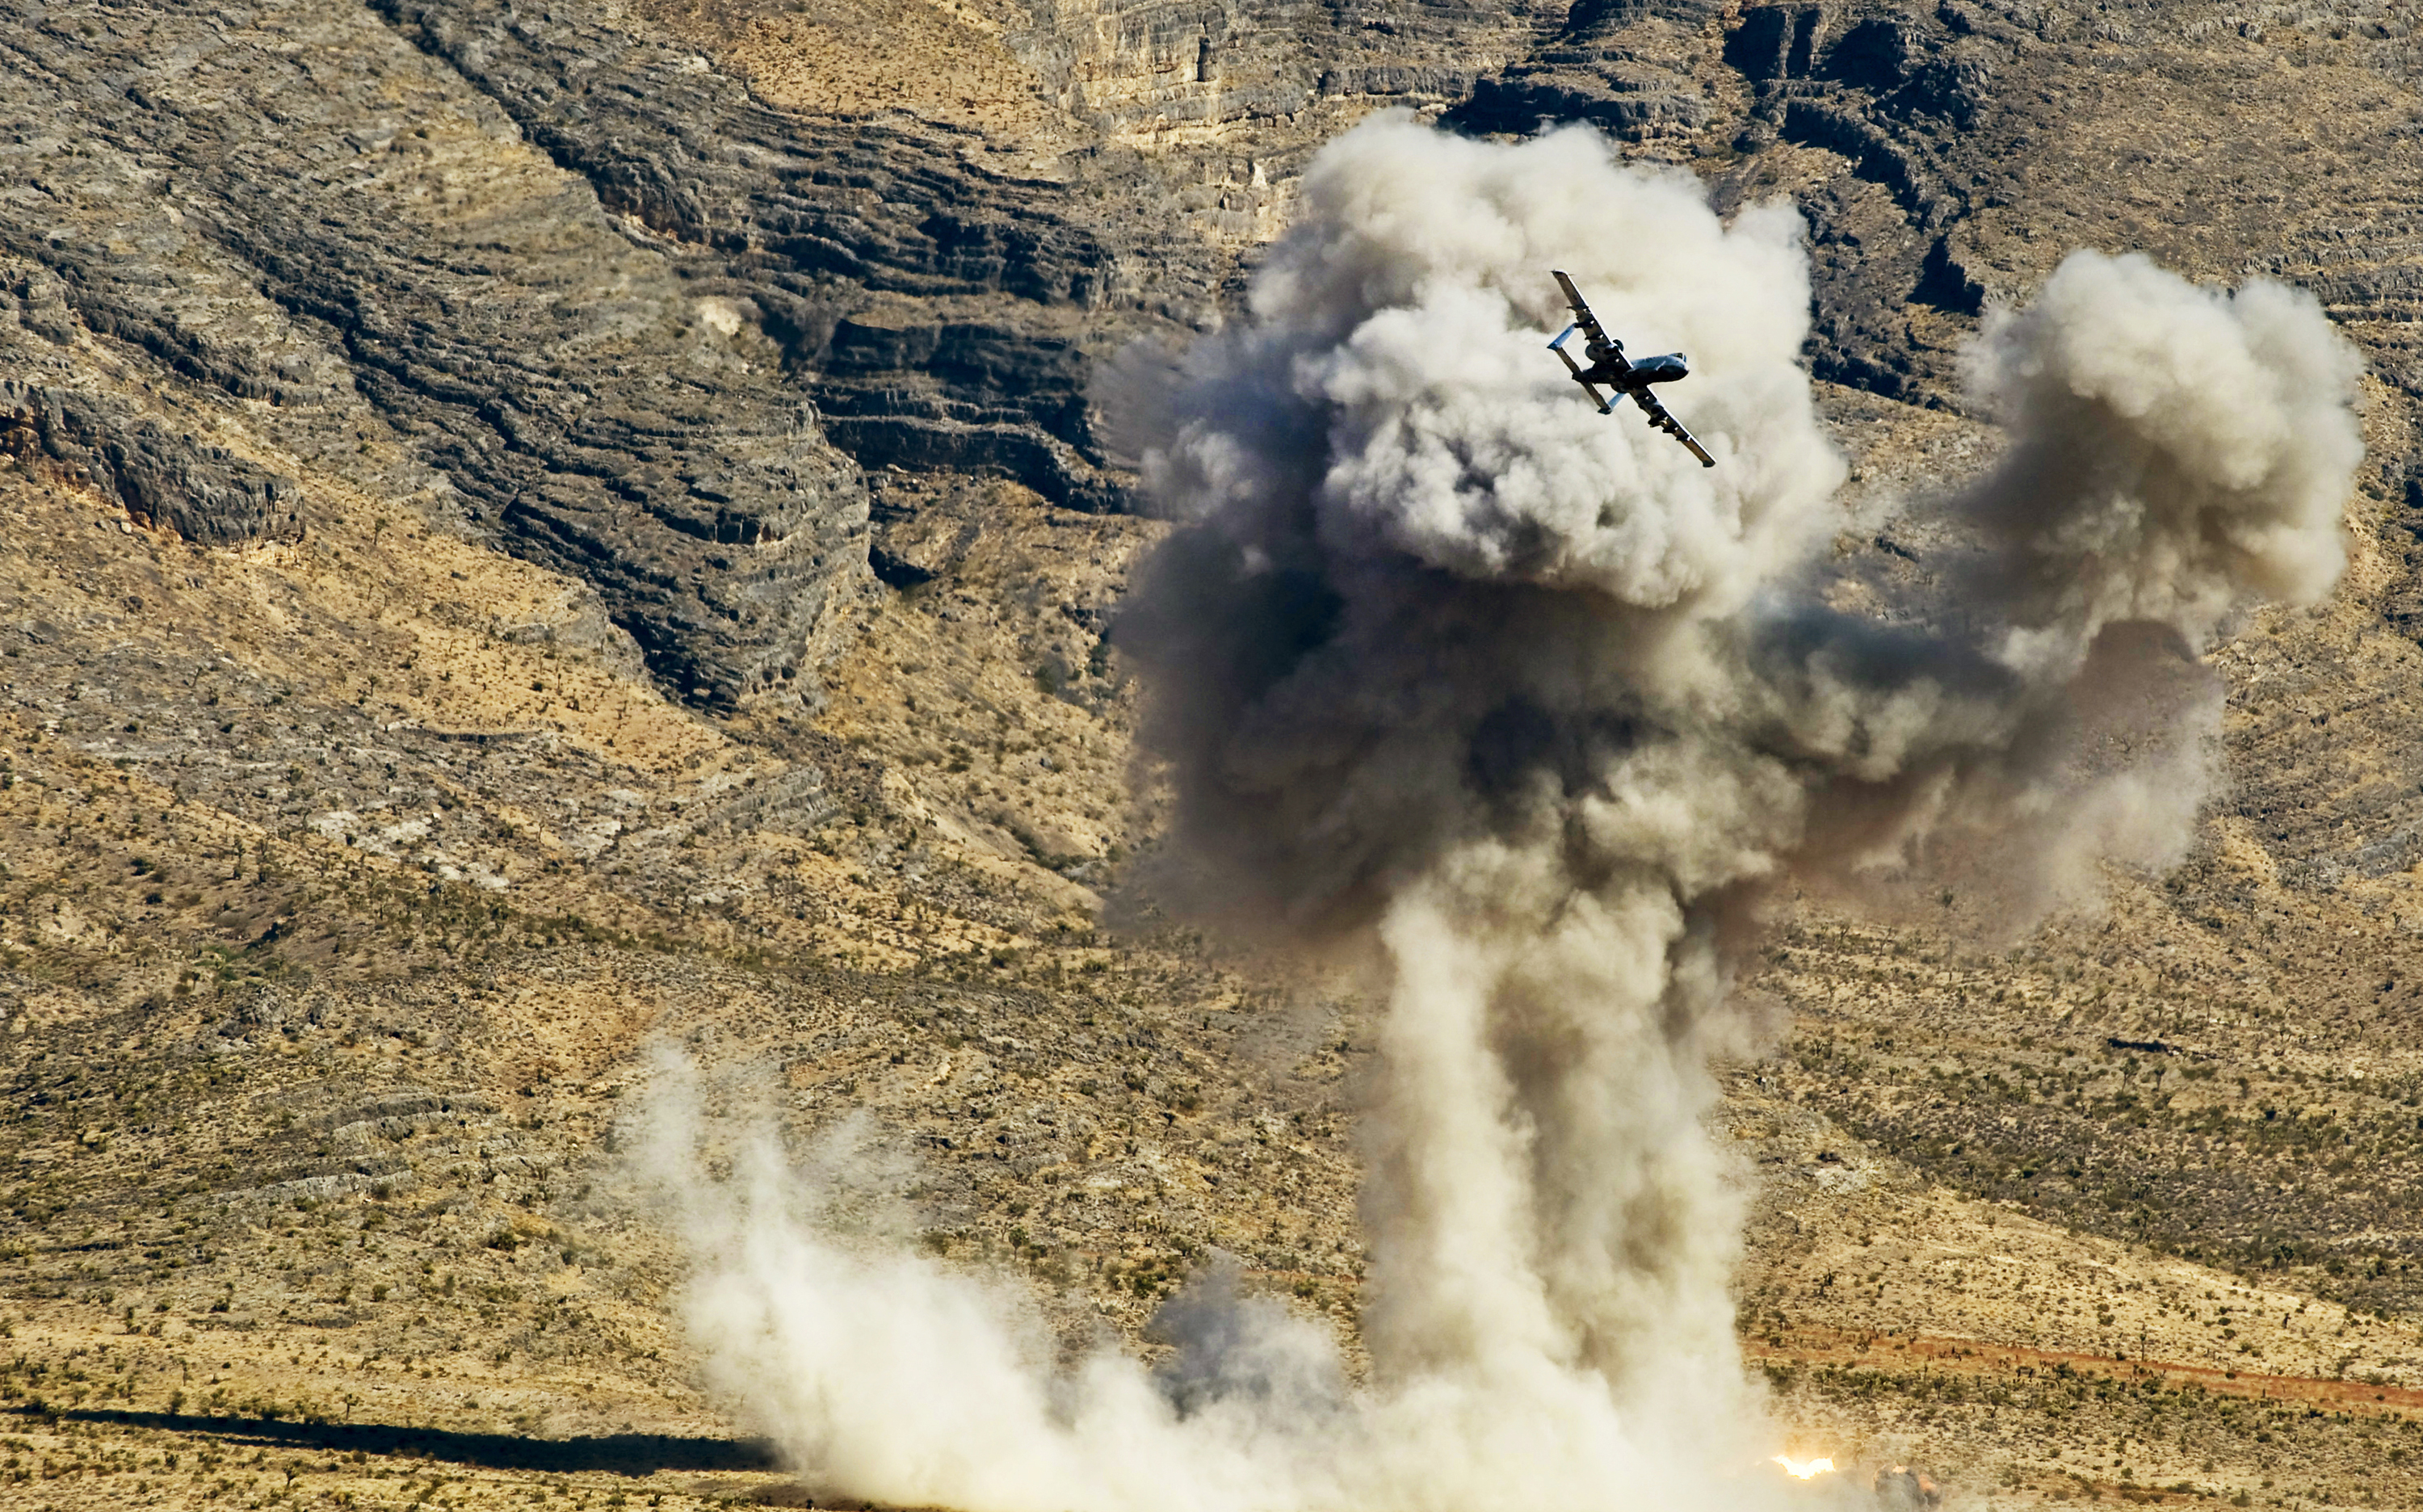 https://upload.wikimedia.org/wikipedia/commons/4/44/USAF_Weapon_School_A-10_explosion.jpg